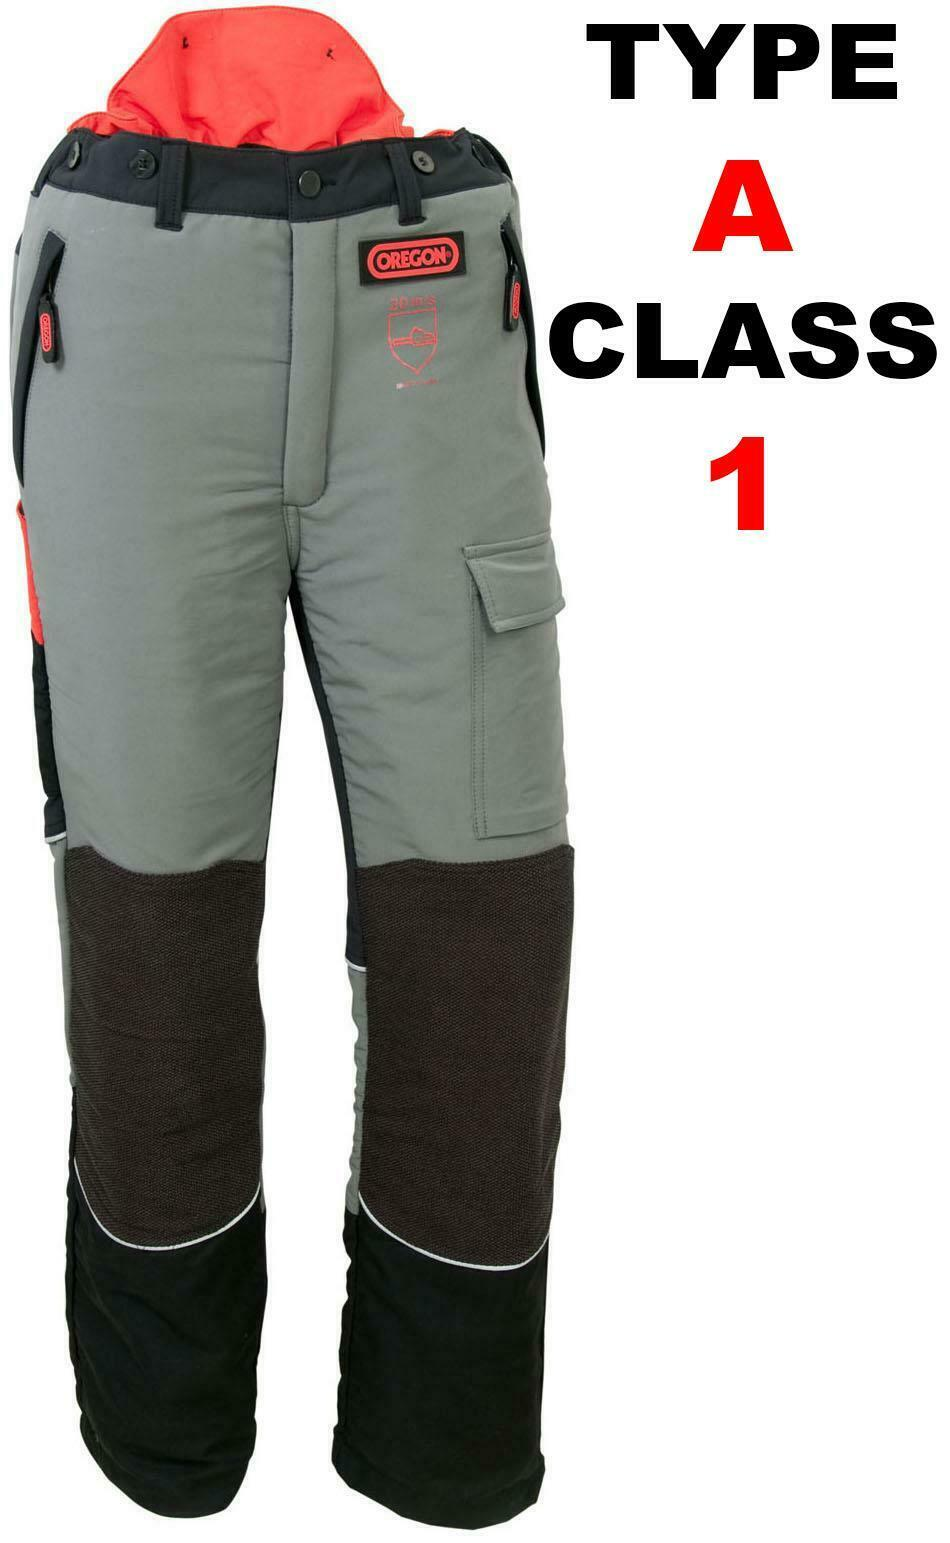 OREGON 295400 CLASS 1 TYPE A FRONT PROTECTION CHAINSAW TROUSERS 20M S Größe LARGE